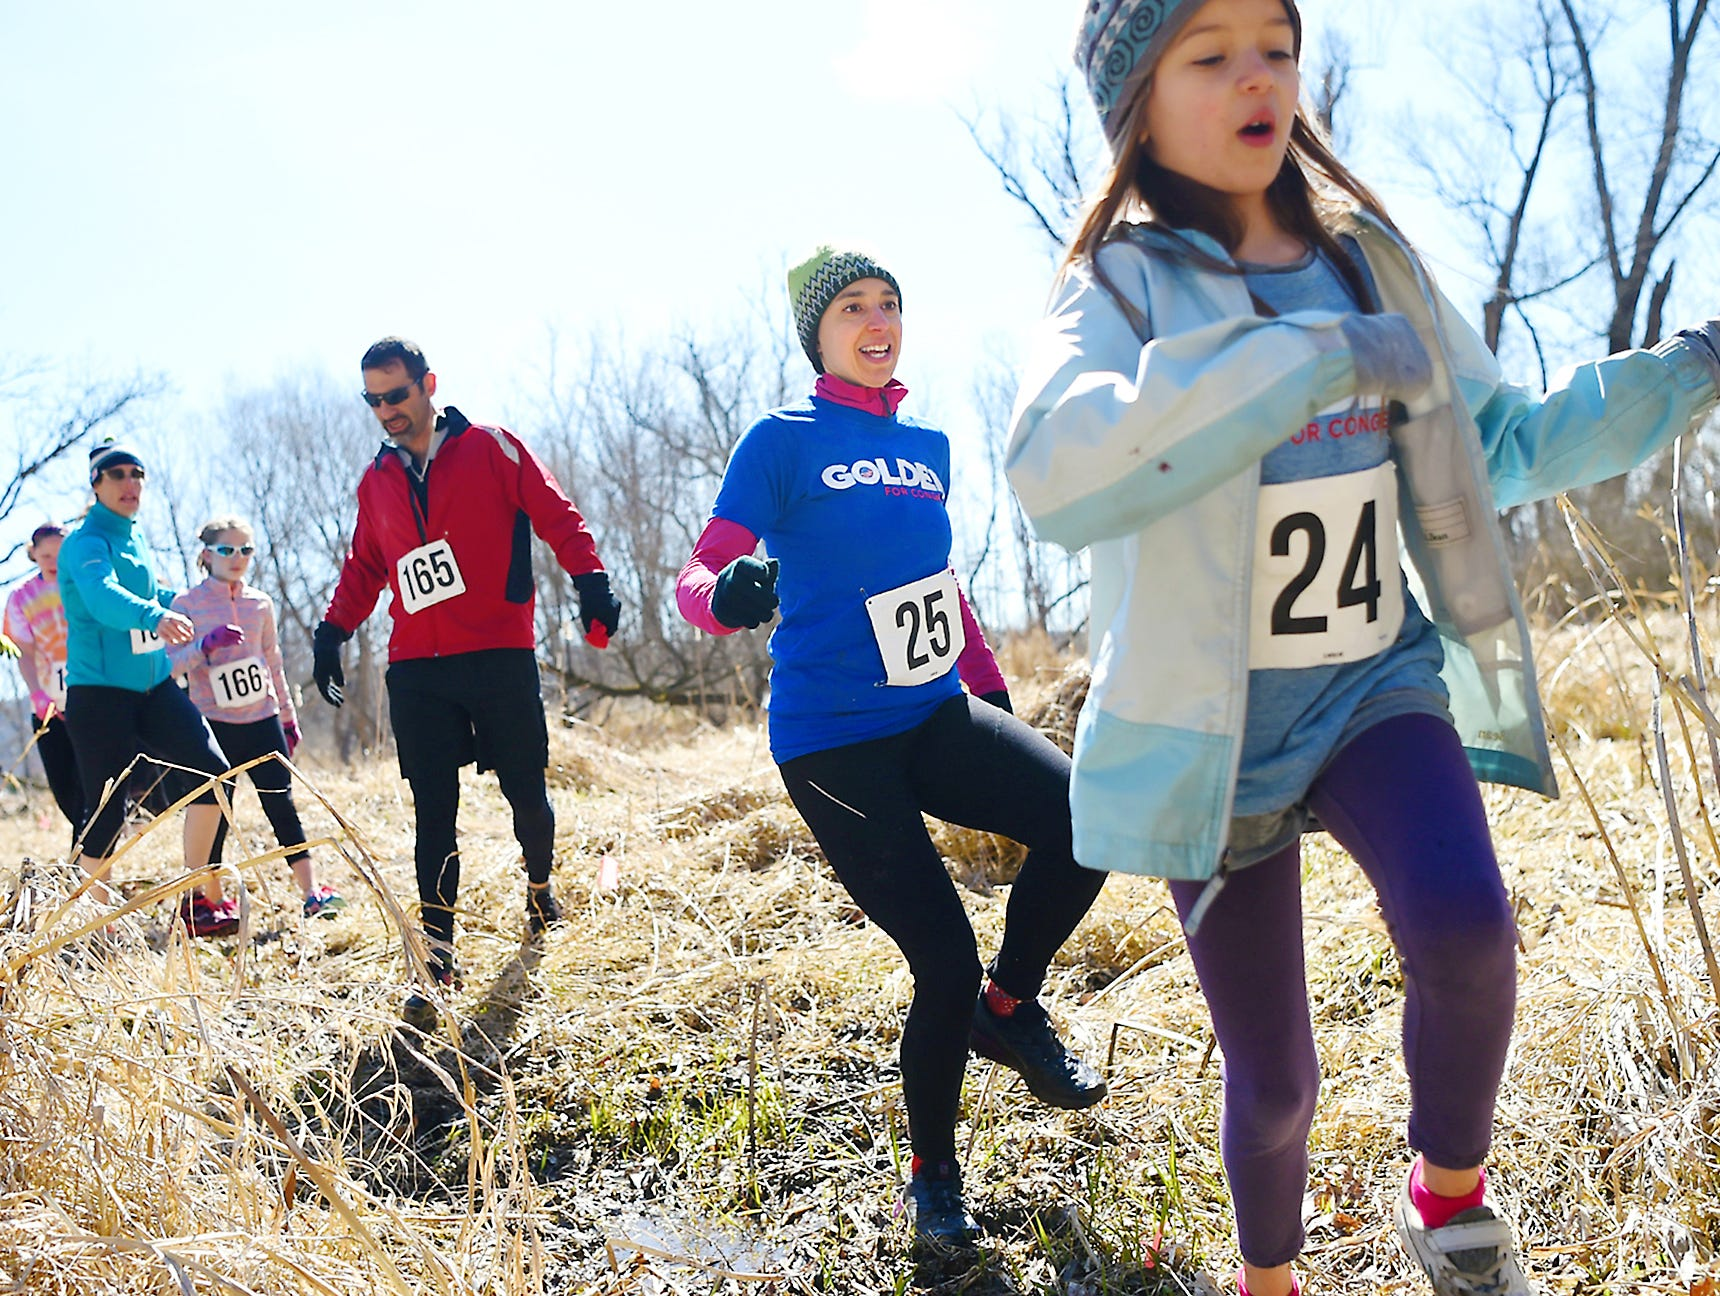 2018: Tough Turtle, an annual obstacle course fun run to benefit Ithaca's Children's Garden, held on Saturday at the Cayuga Waterfront and Black Diamond Trails.